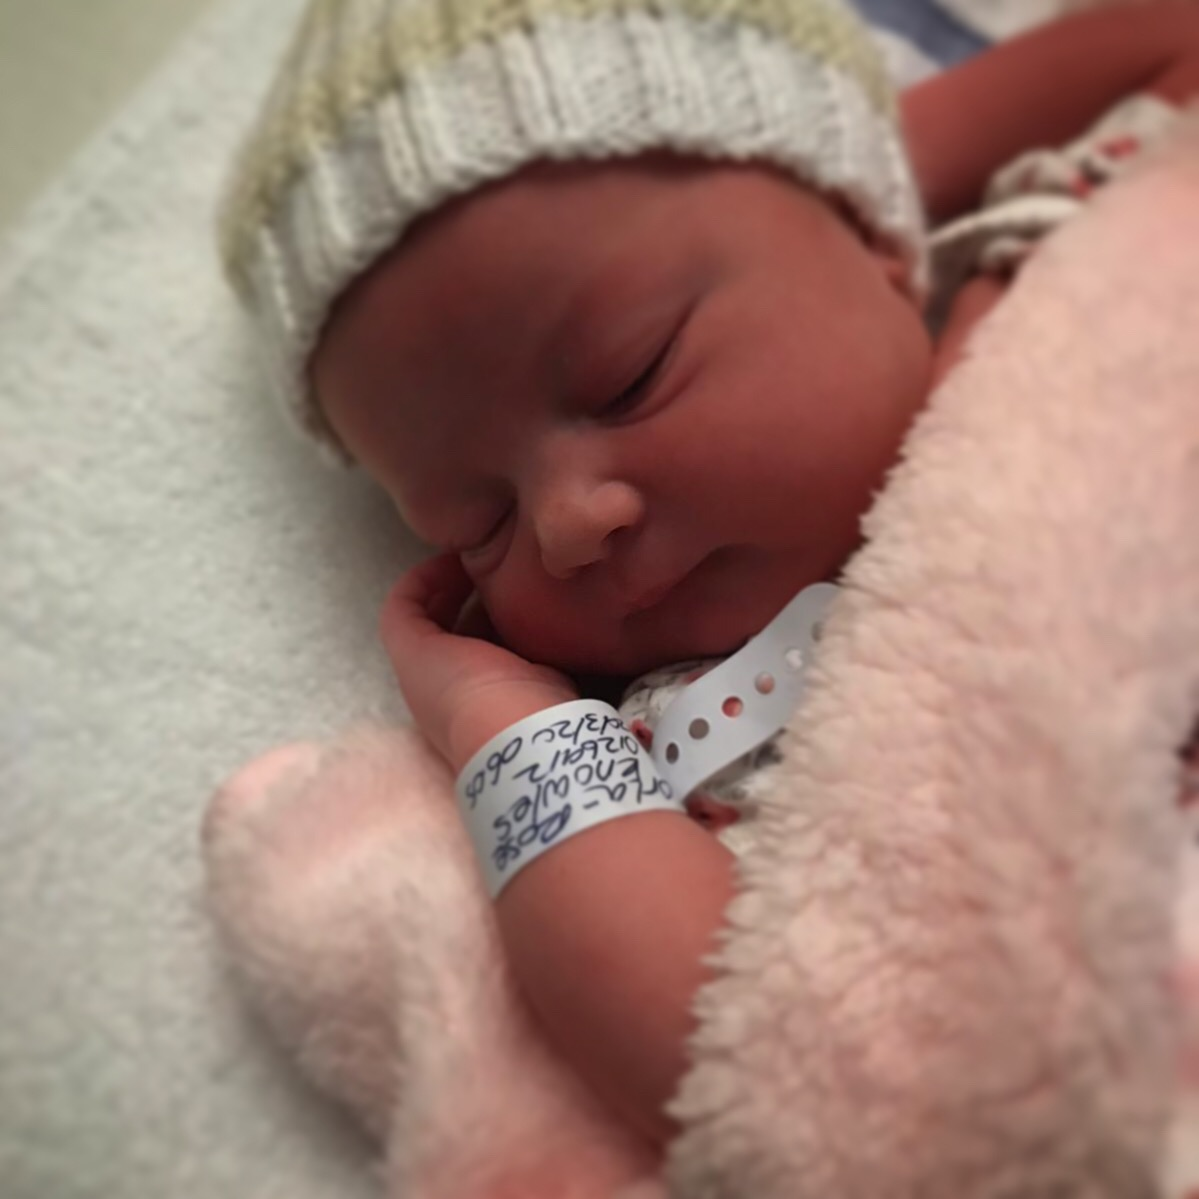 York Press: Newborn baby Orla-Rose Daniel was born to parents Sarah Knowles and Andy Daniel  of Wheldrake on March 30. Orla is a  sister for Daisy-May.